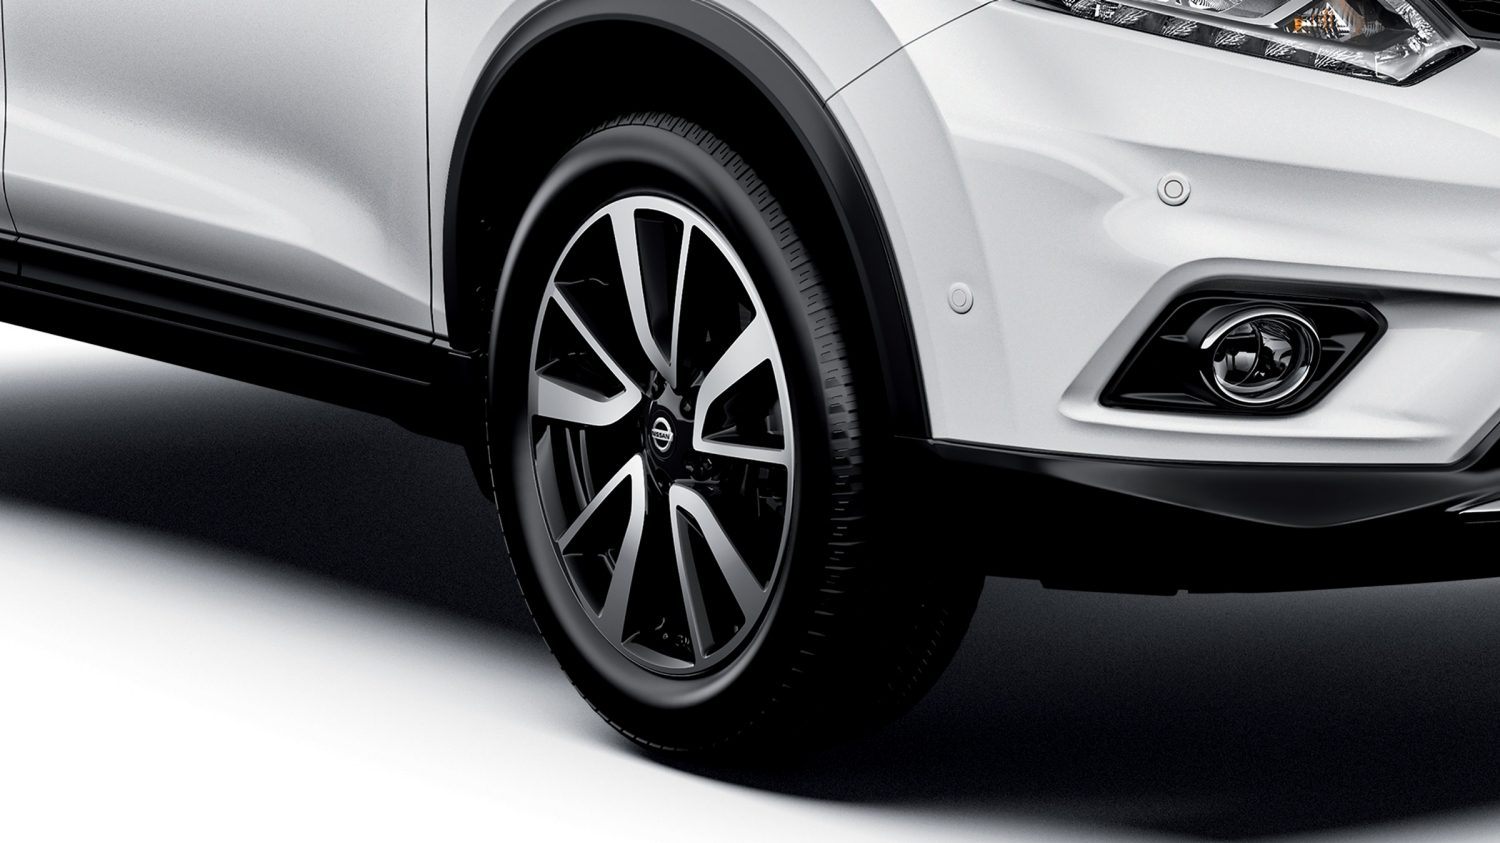 Wheels - Nissan X-Trail